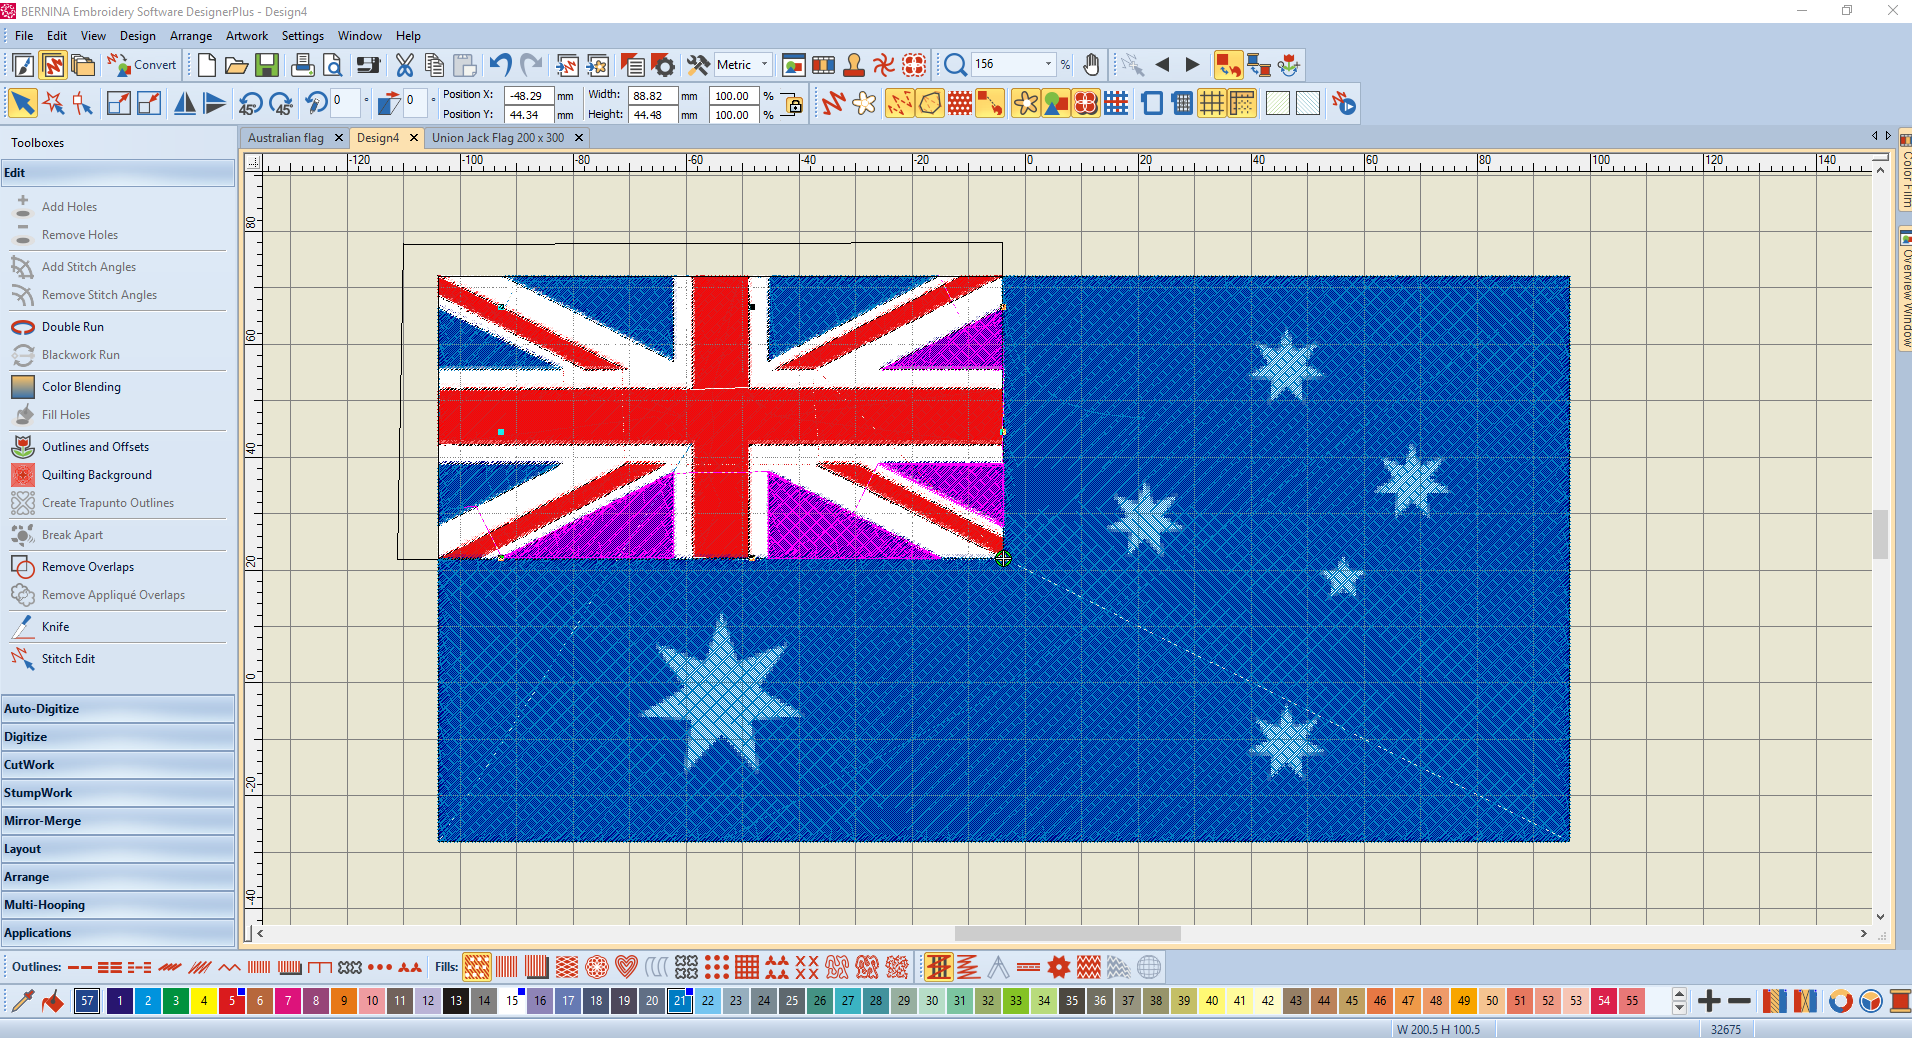 Flag Of Australia Bernina Embroidery Software Designerplus V8 Using Closed Objects Cutting Holes And Moving Nodes